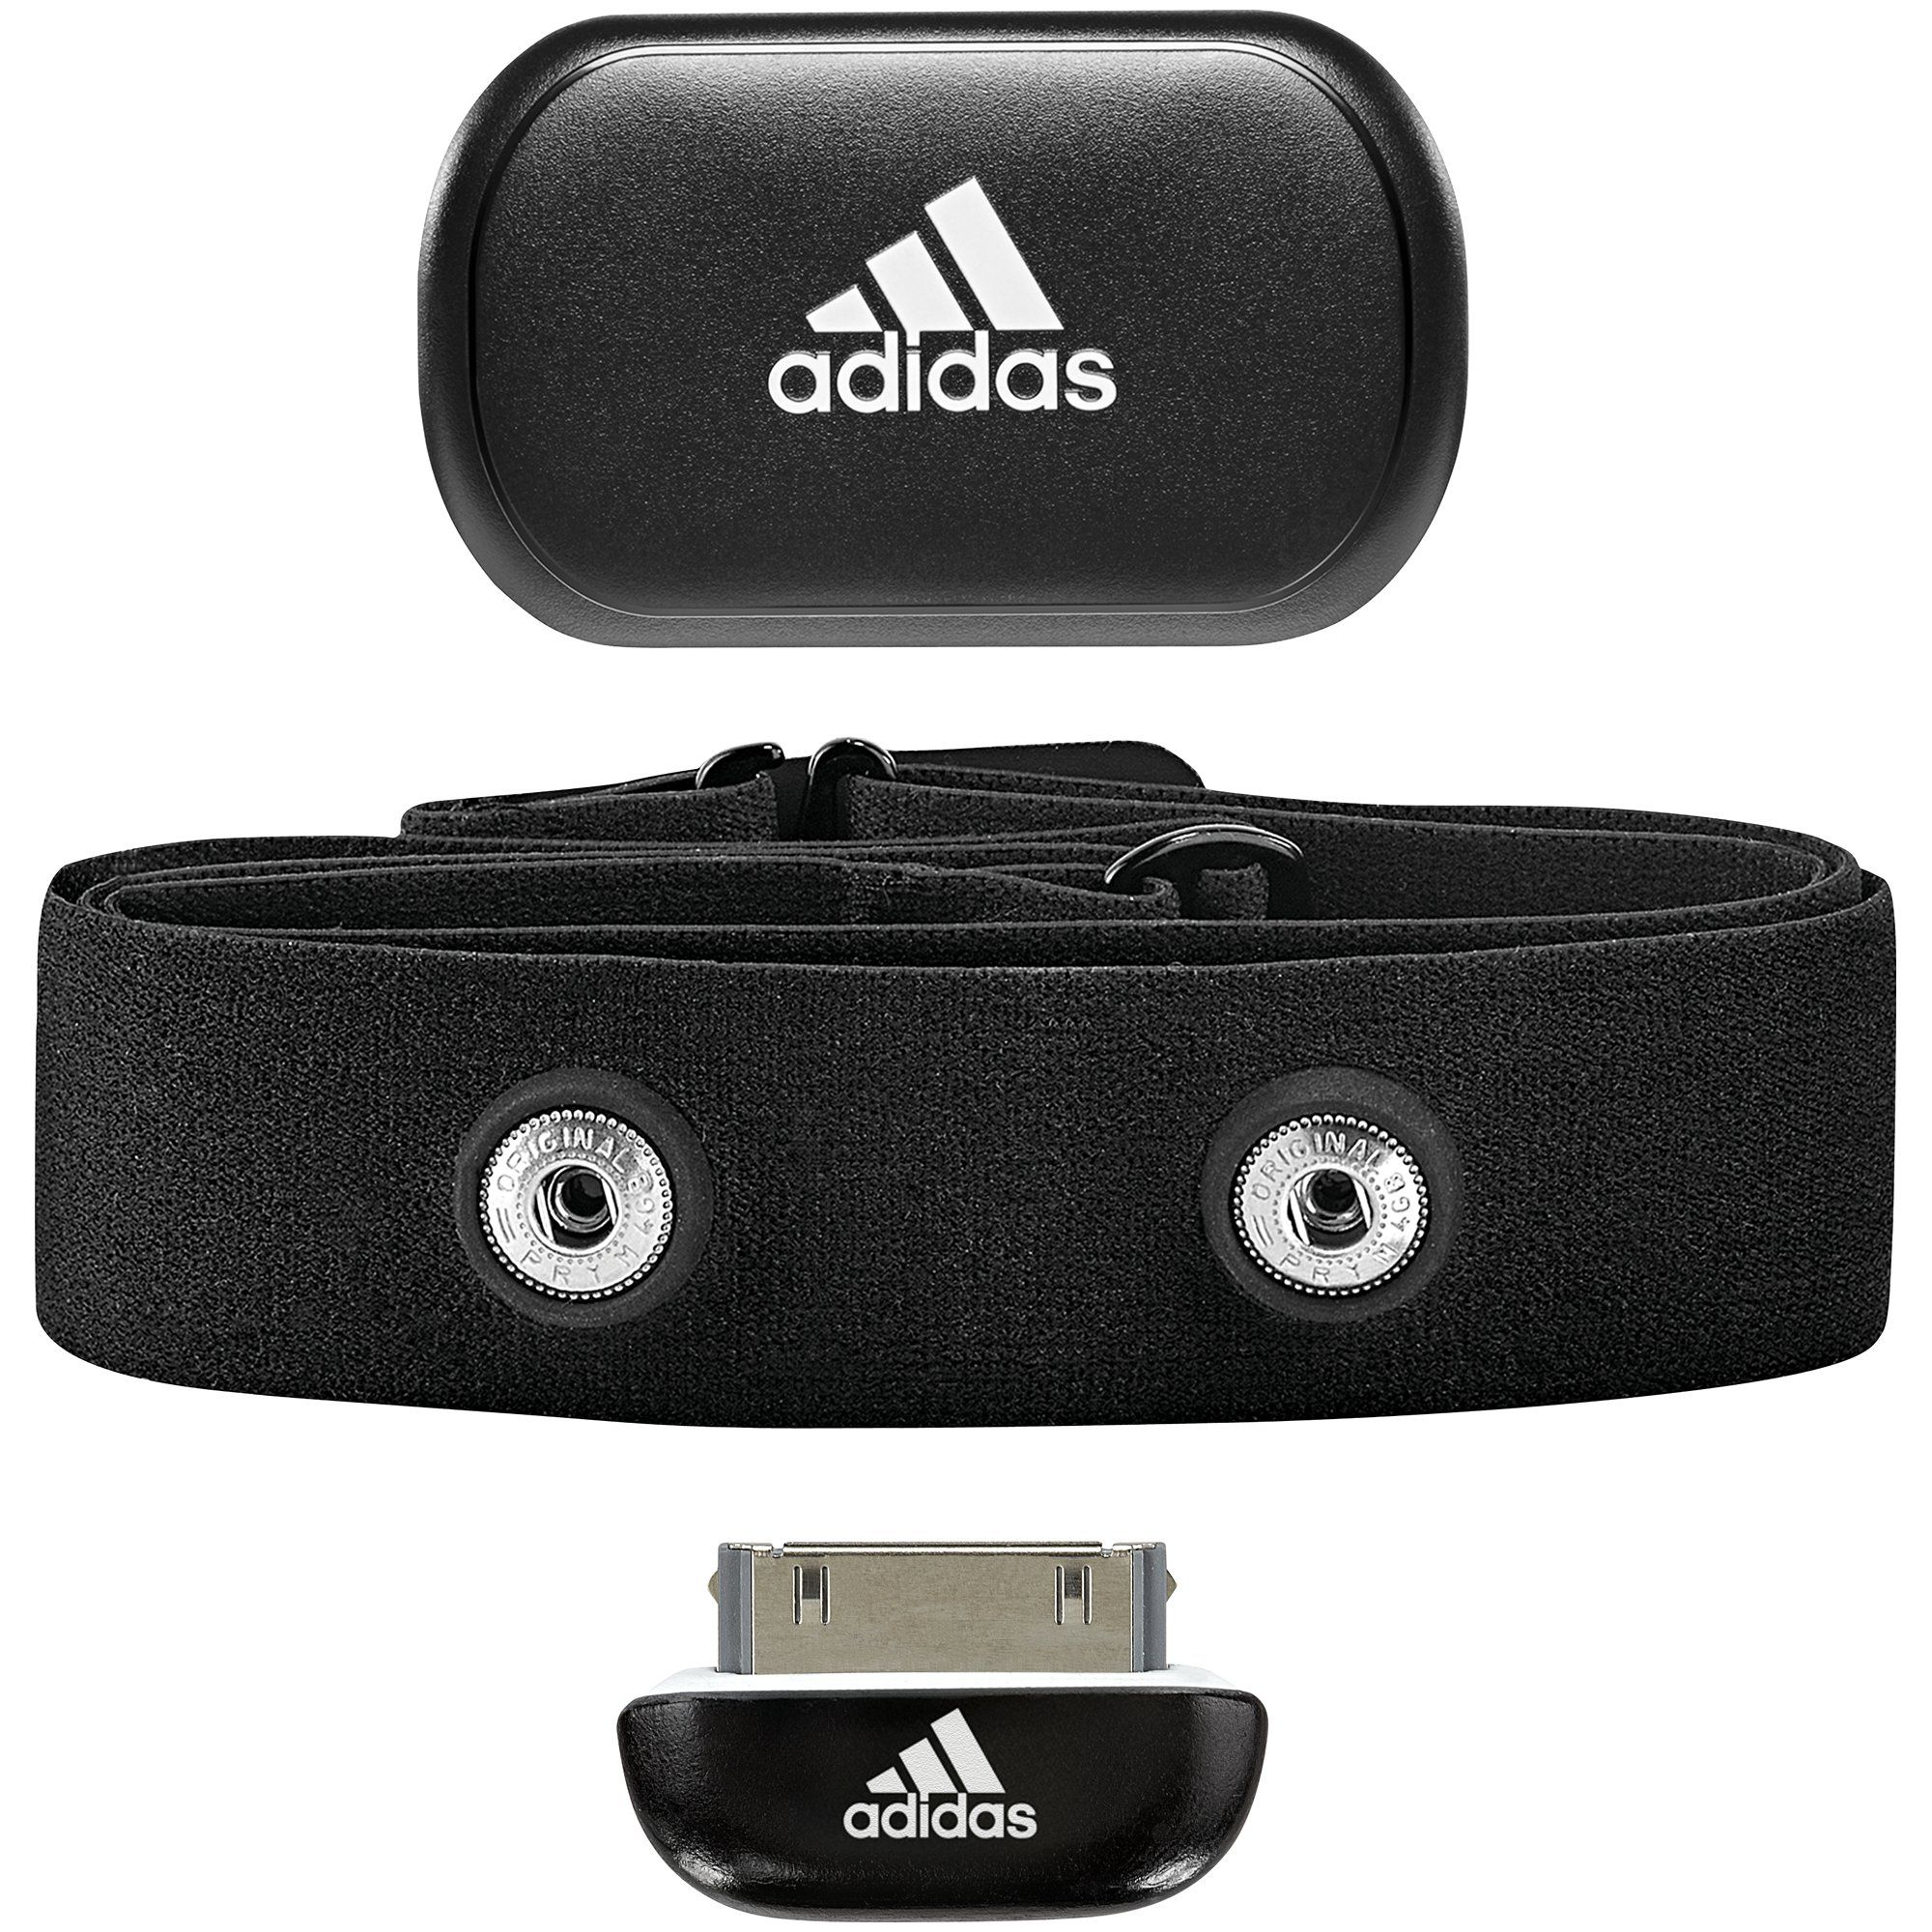 This Adidas MiCoach Connect Heart Rate Monitor Instantly